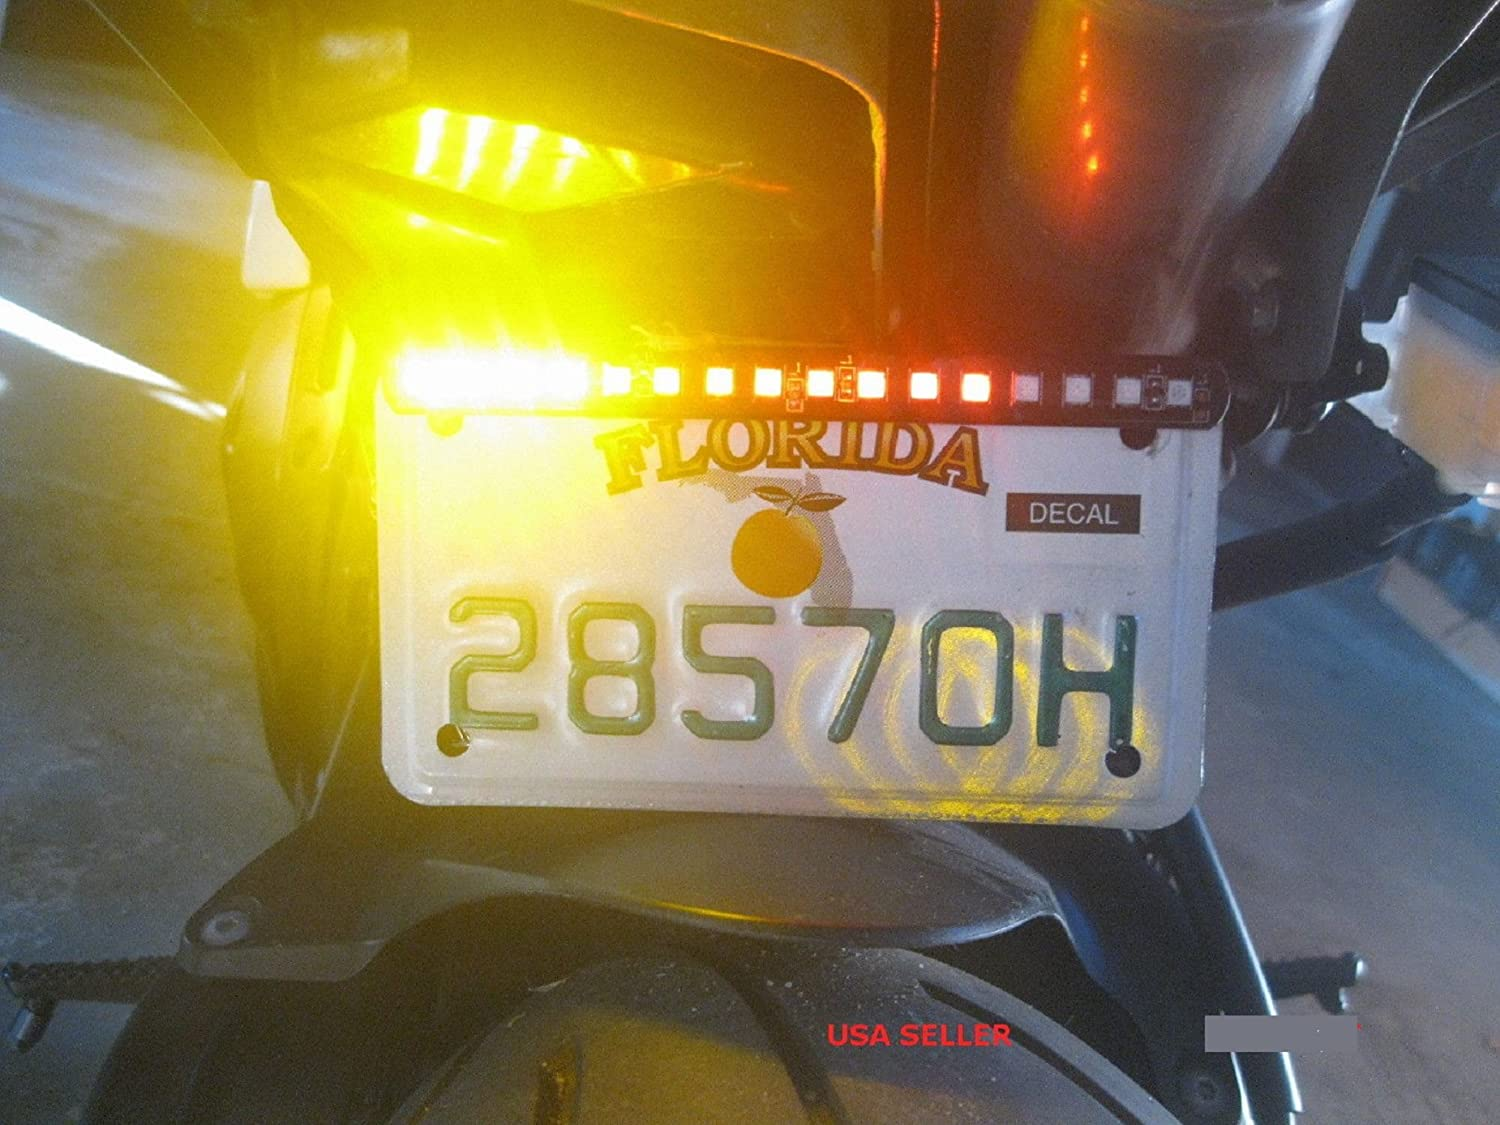 New SMD 5050 LED Turn Signal Brake Light and Running Tail Light for Car Motorcycle License Plate. KINGSHOW